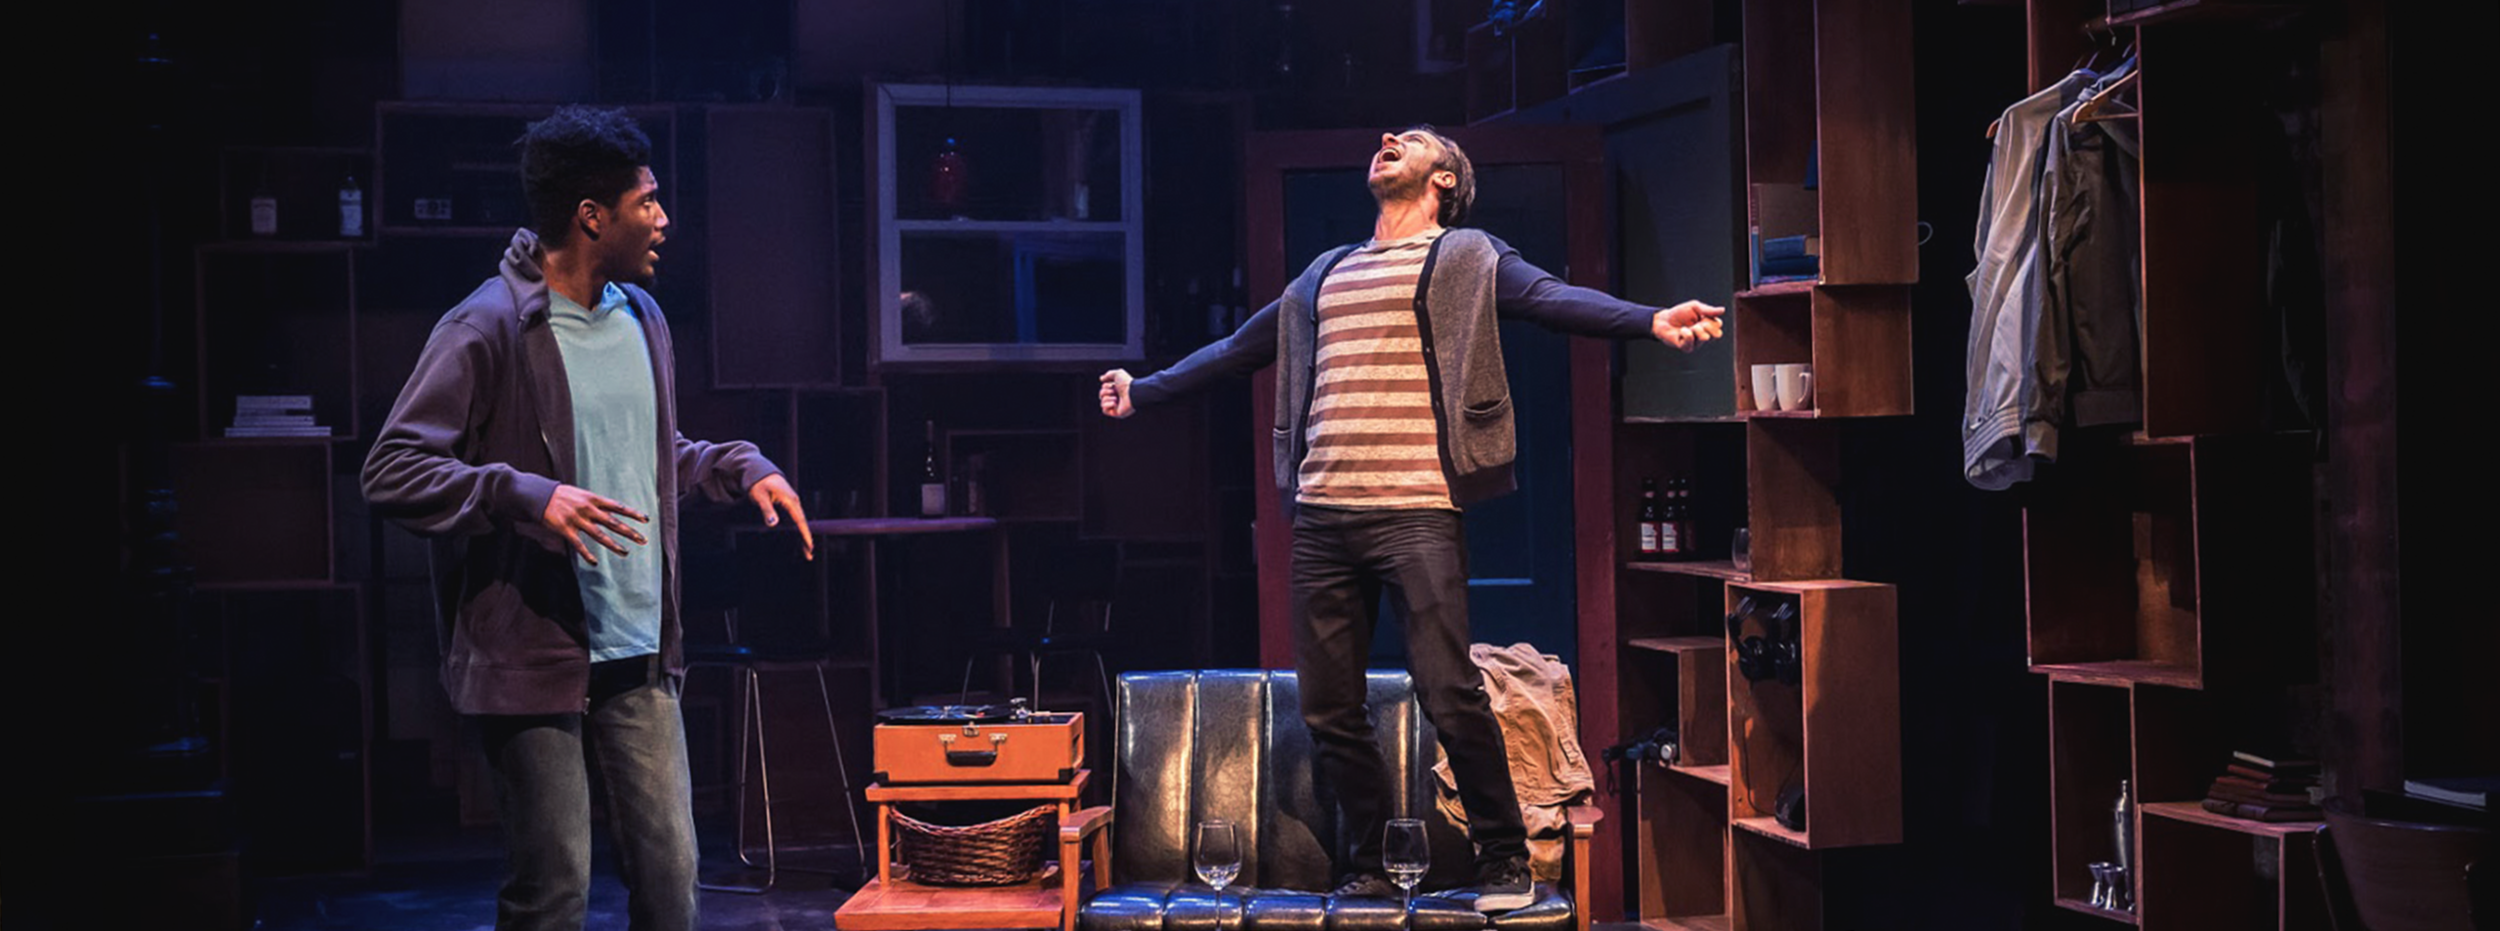 about face theatre  | CHICAGO premiere  |  by Harrison David Rivers -